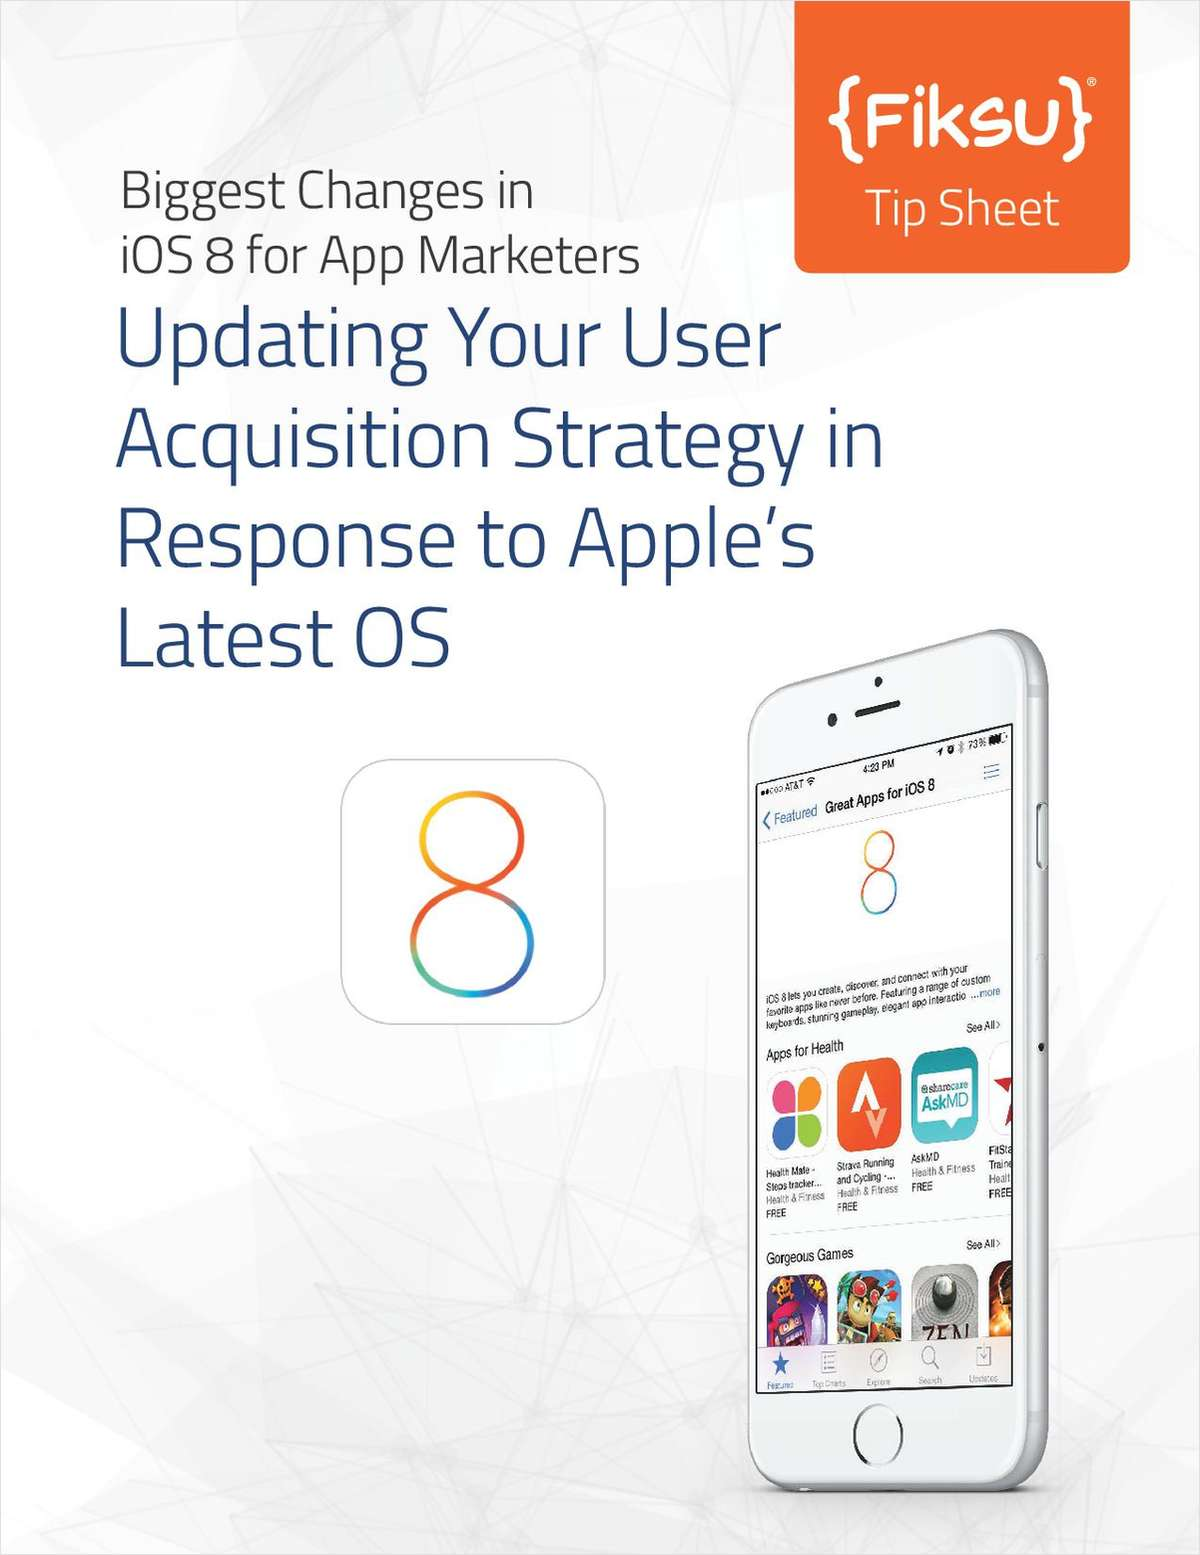 Biggest Changes in iOS 8 for App Marketers